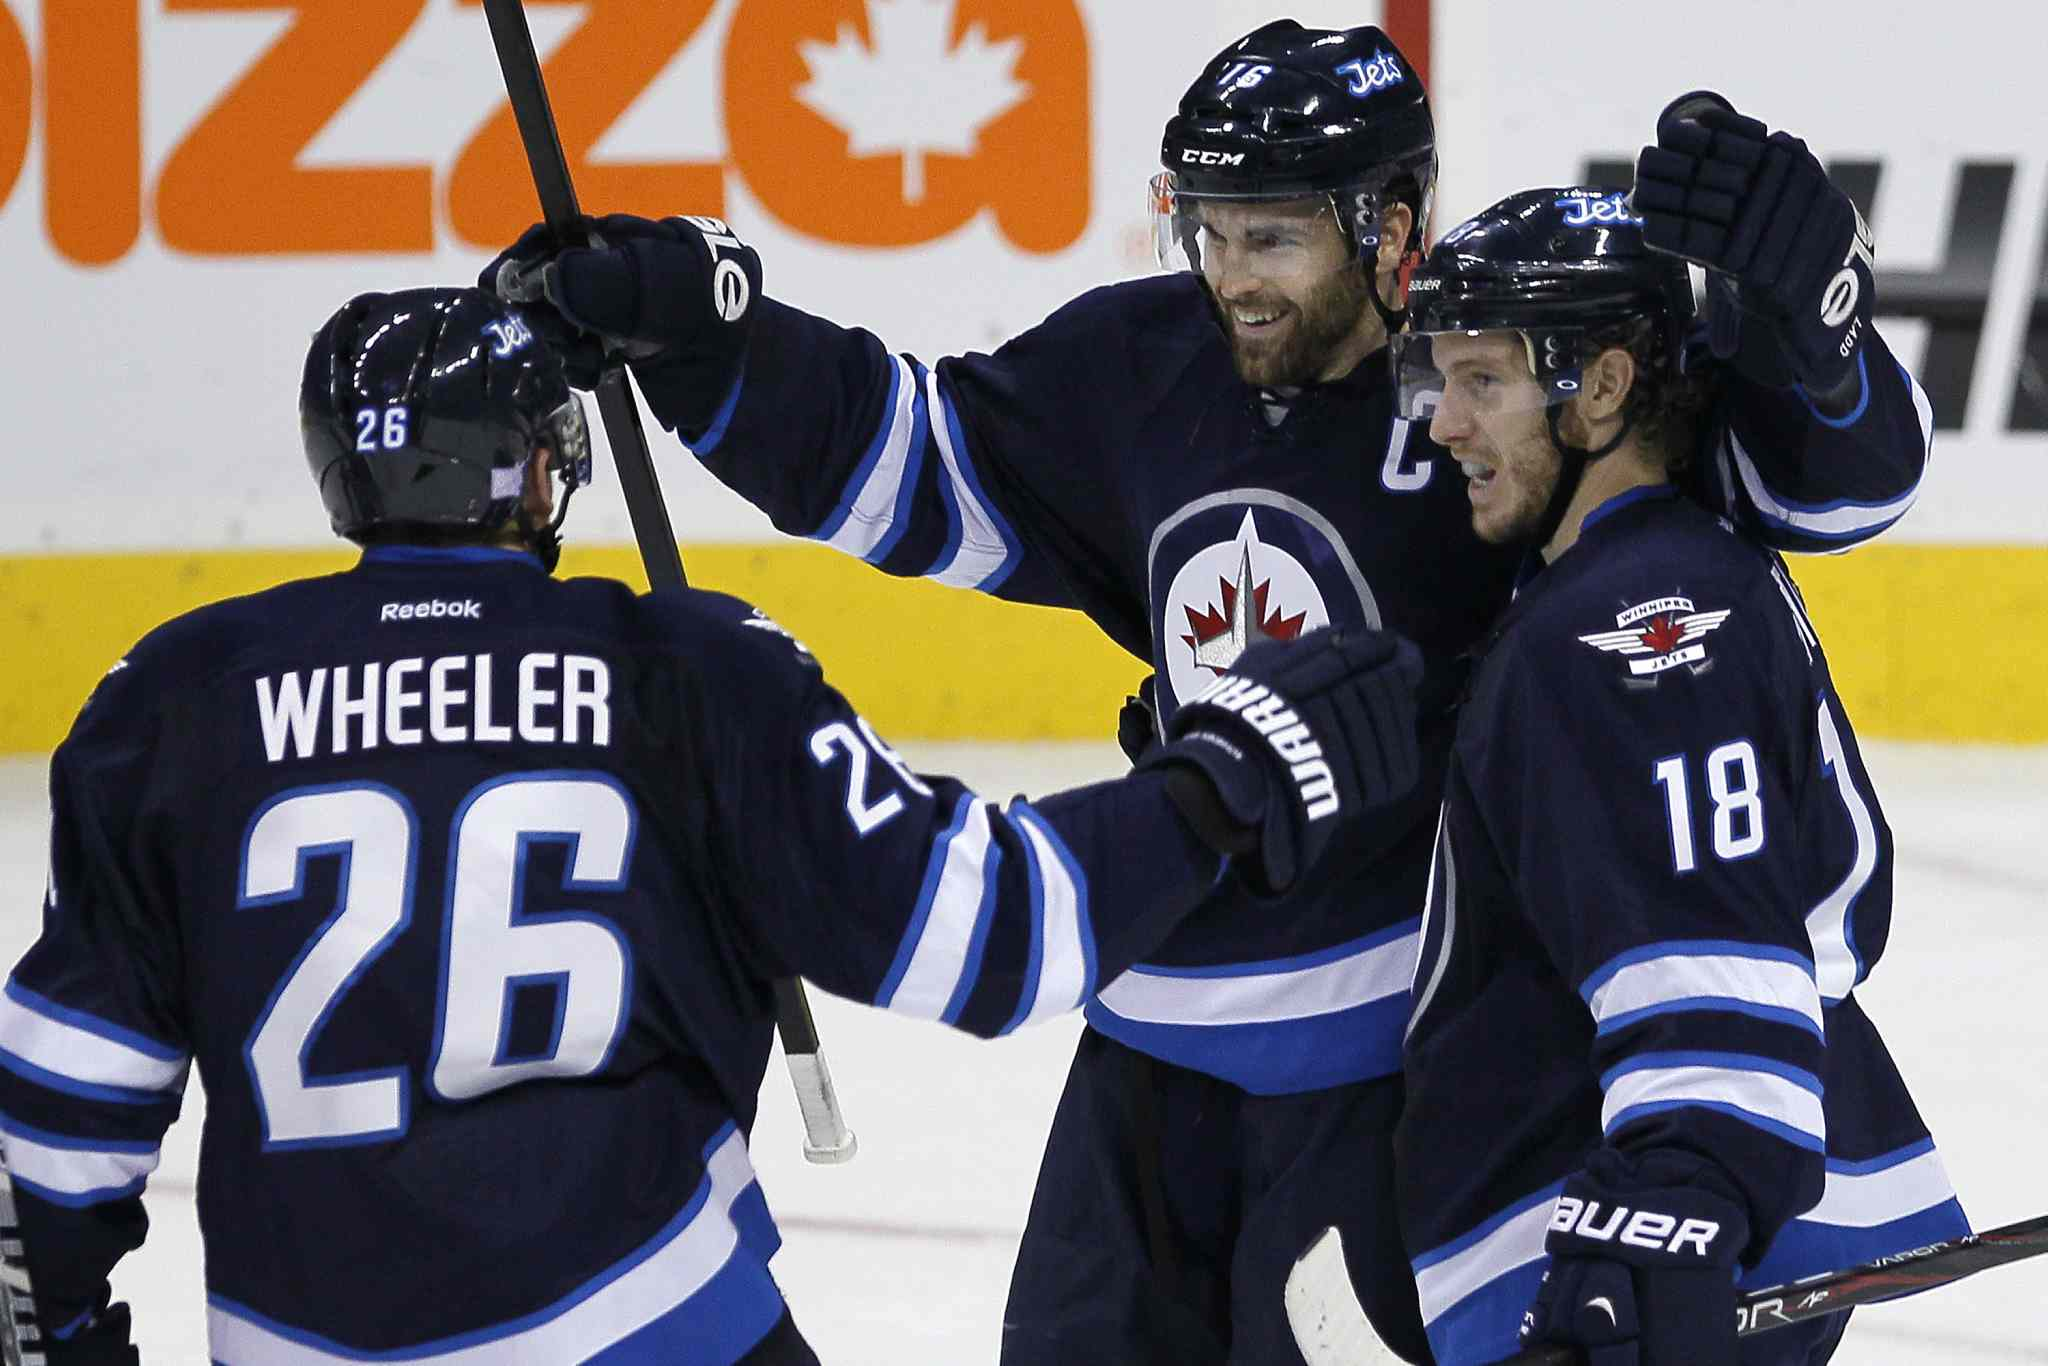 Winnipeg Jets' Blake Wheeler, Andrew Ladd and Bryan Little (18) celebrate Ladd's goal against the Anaheim Ducks during first-period NHL action at the MTS Centre in Winnipeg, Sunday.